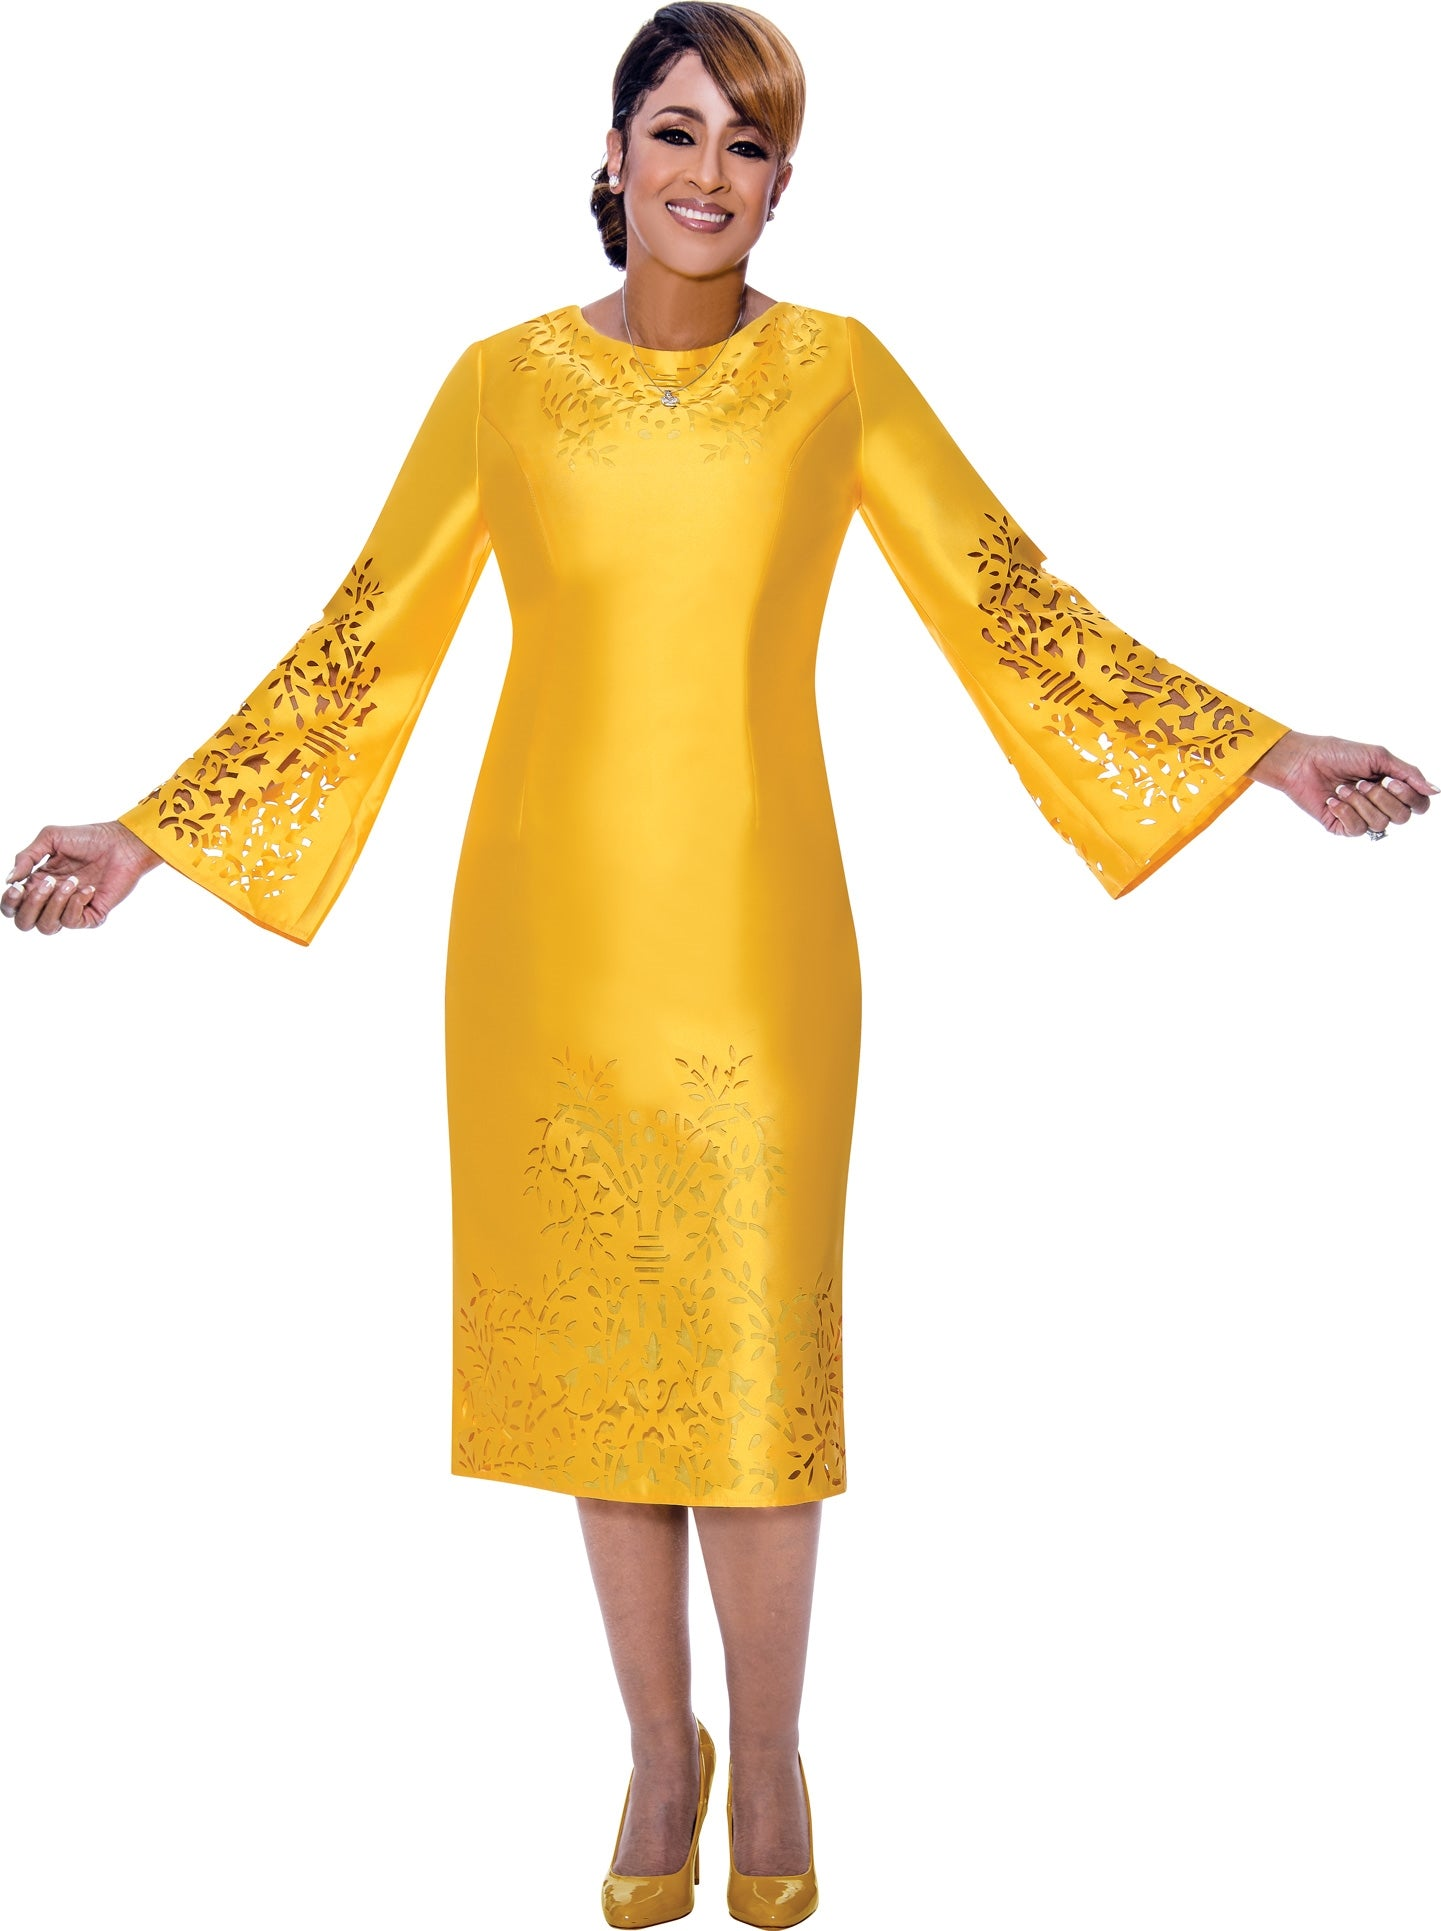 Dorinda Clark Cole Dress 2651-Yellow - Church Suits For Less